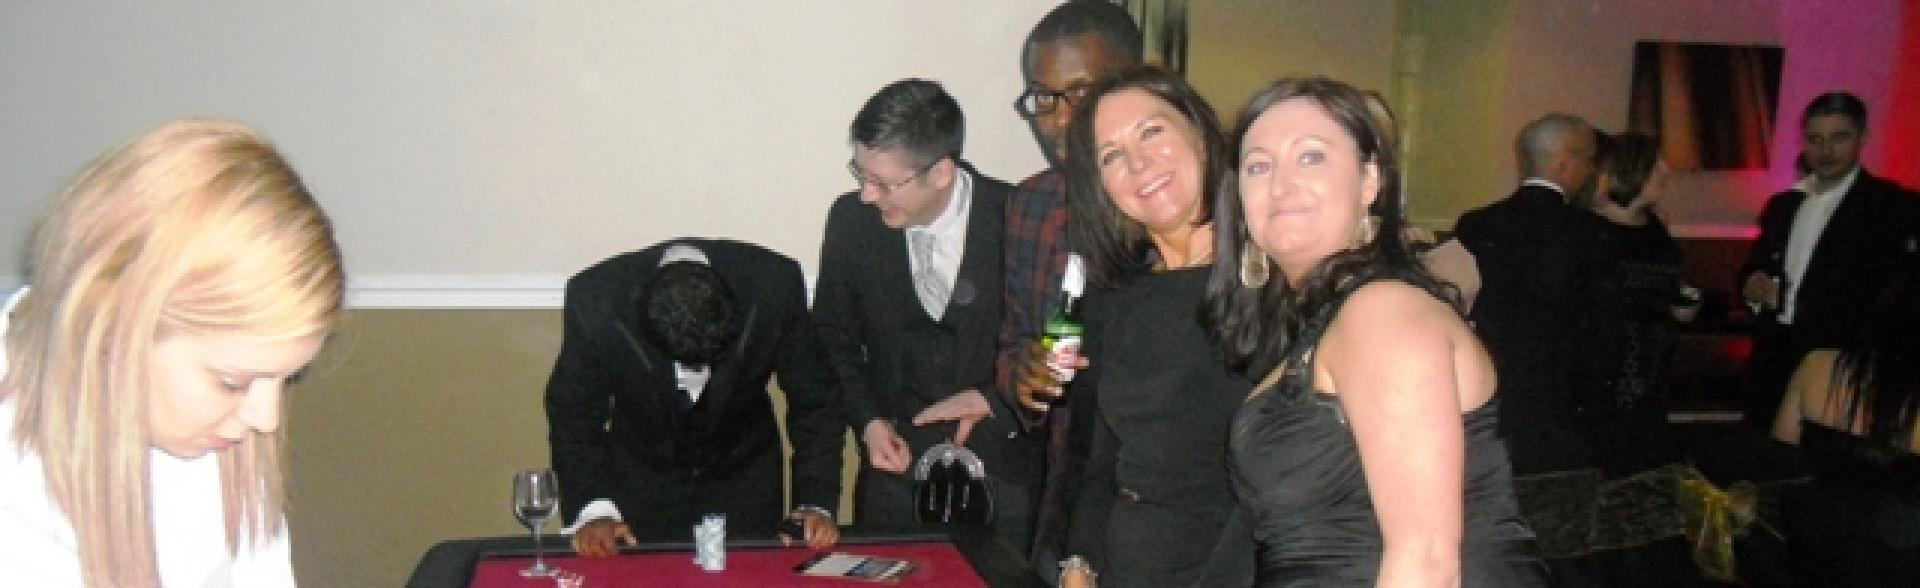 Team Building Events - Fun Casino Night Awards Ceremony with Search Consultancy